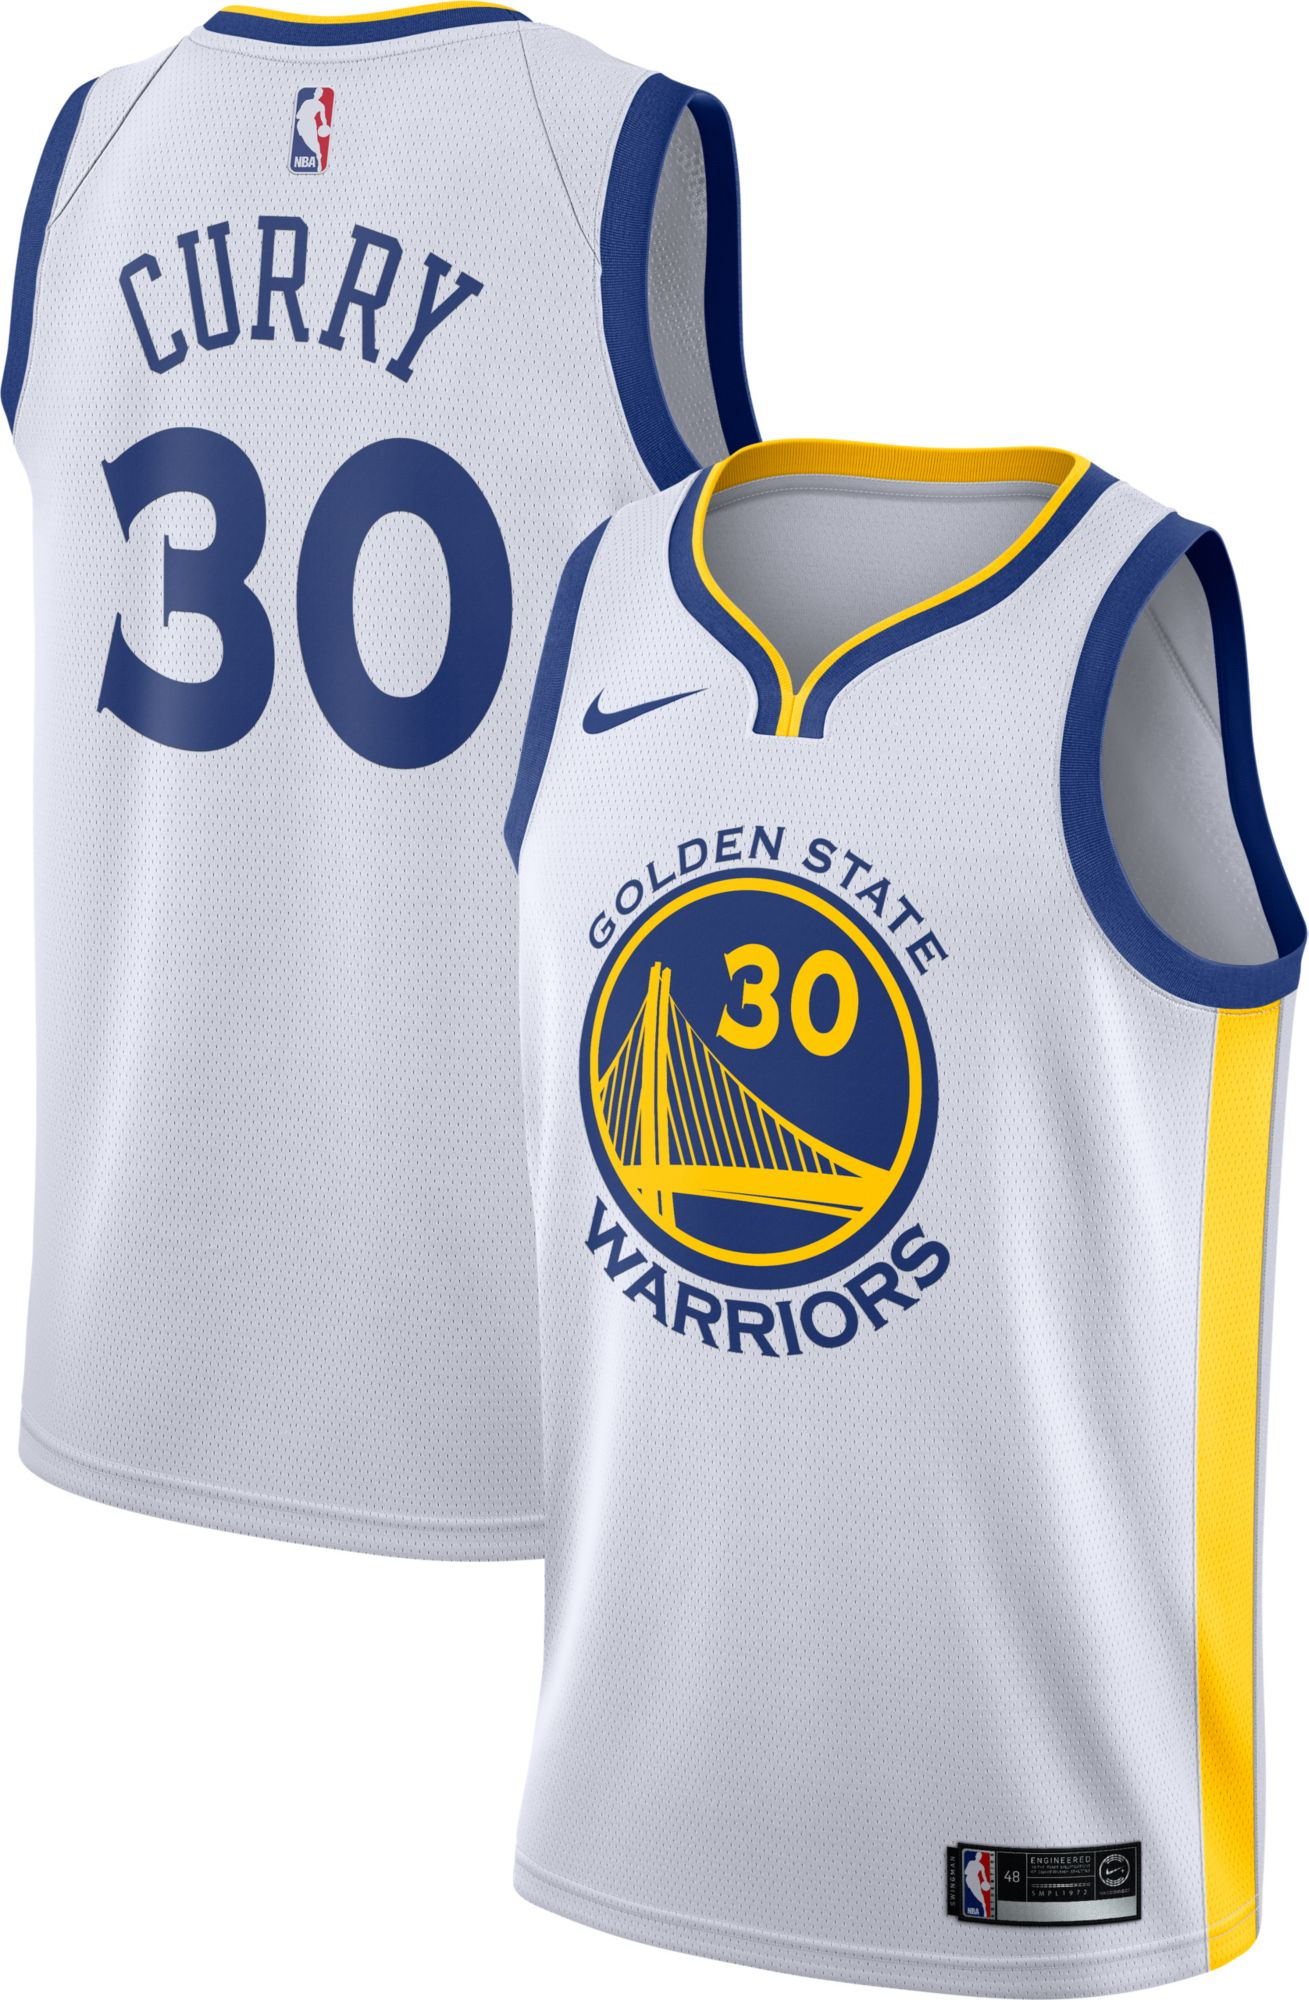 23001d225 Nike Men's Golden State Warriors Stephen Curry #30 White Dri-FIT ...